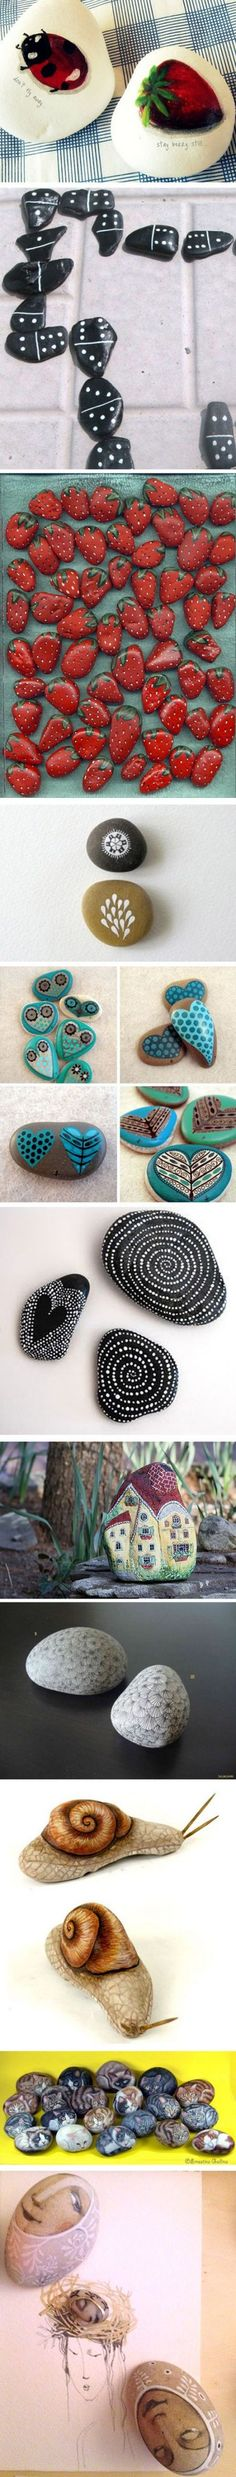 Easy Paint Rock For Try at Home (Stone Art & Rock Painting Ideas) Stone Crafts, Rock Crafts, Crafts To Do, Arts And Crafts, Kids Crafts, Pebble Painting, Pebble Art, Stone Painting, Rock Painting